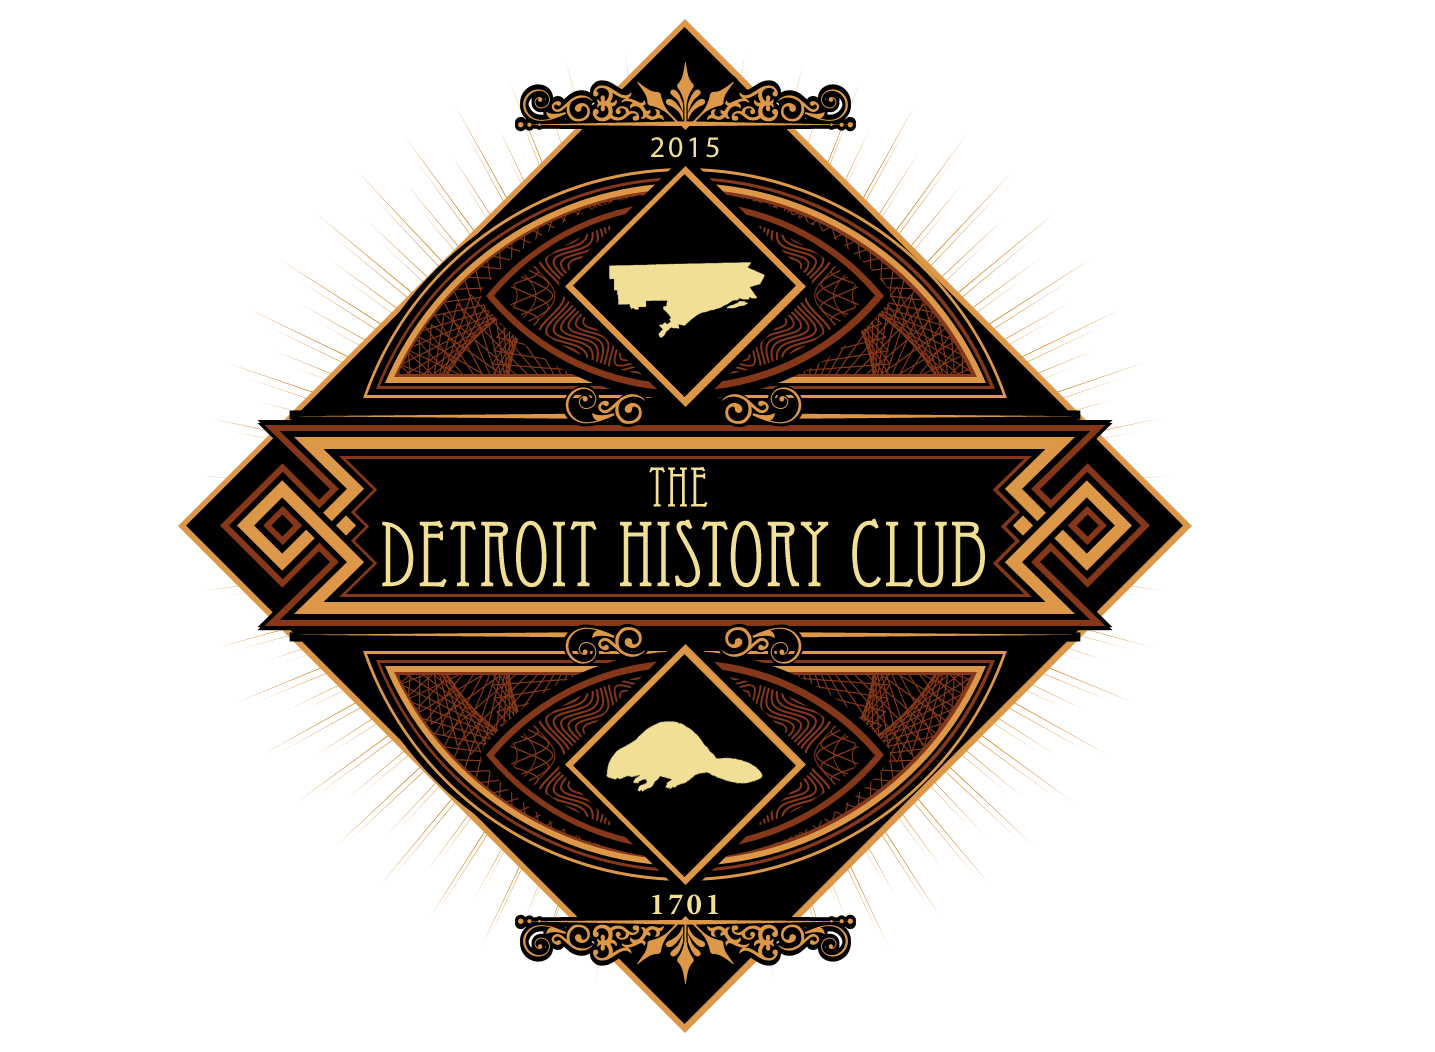 The Detroit History Club